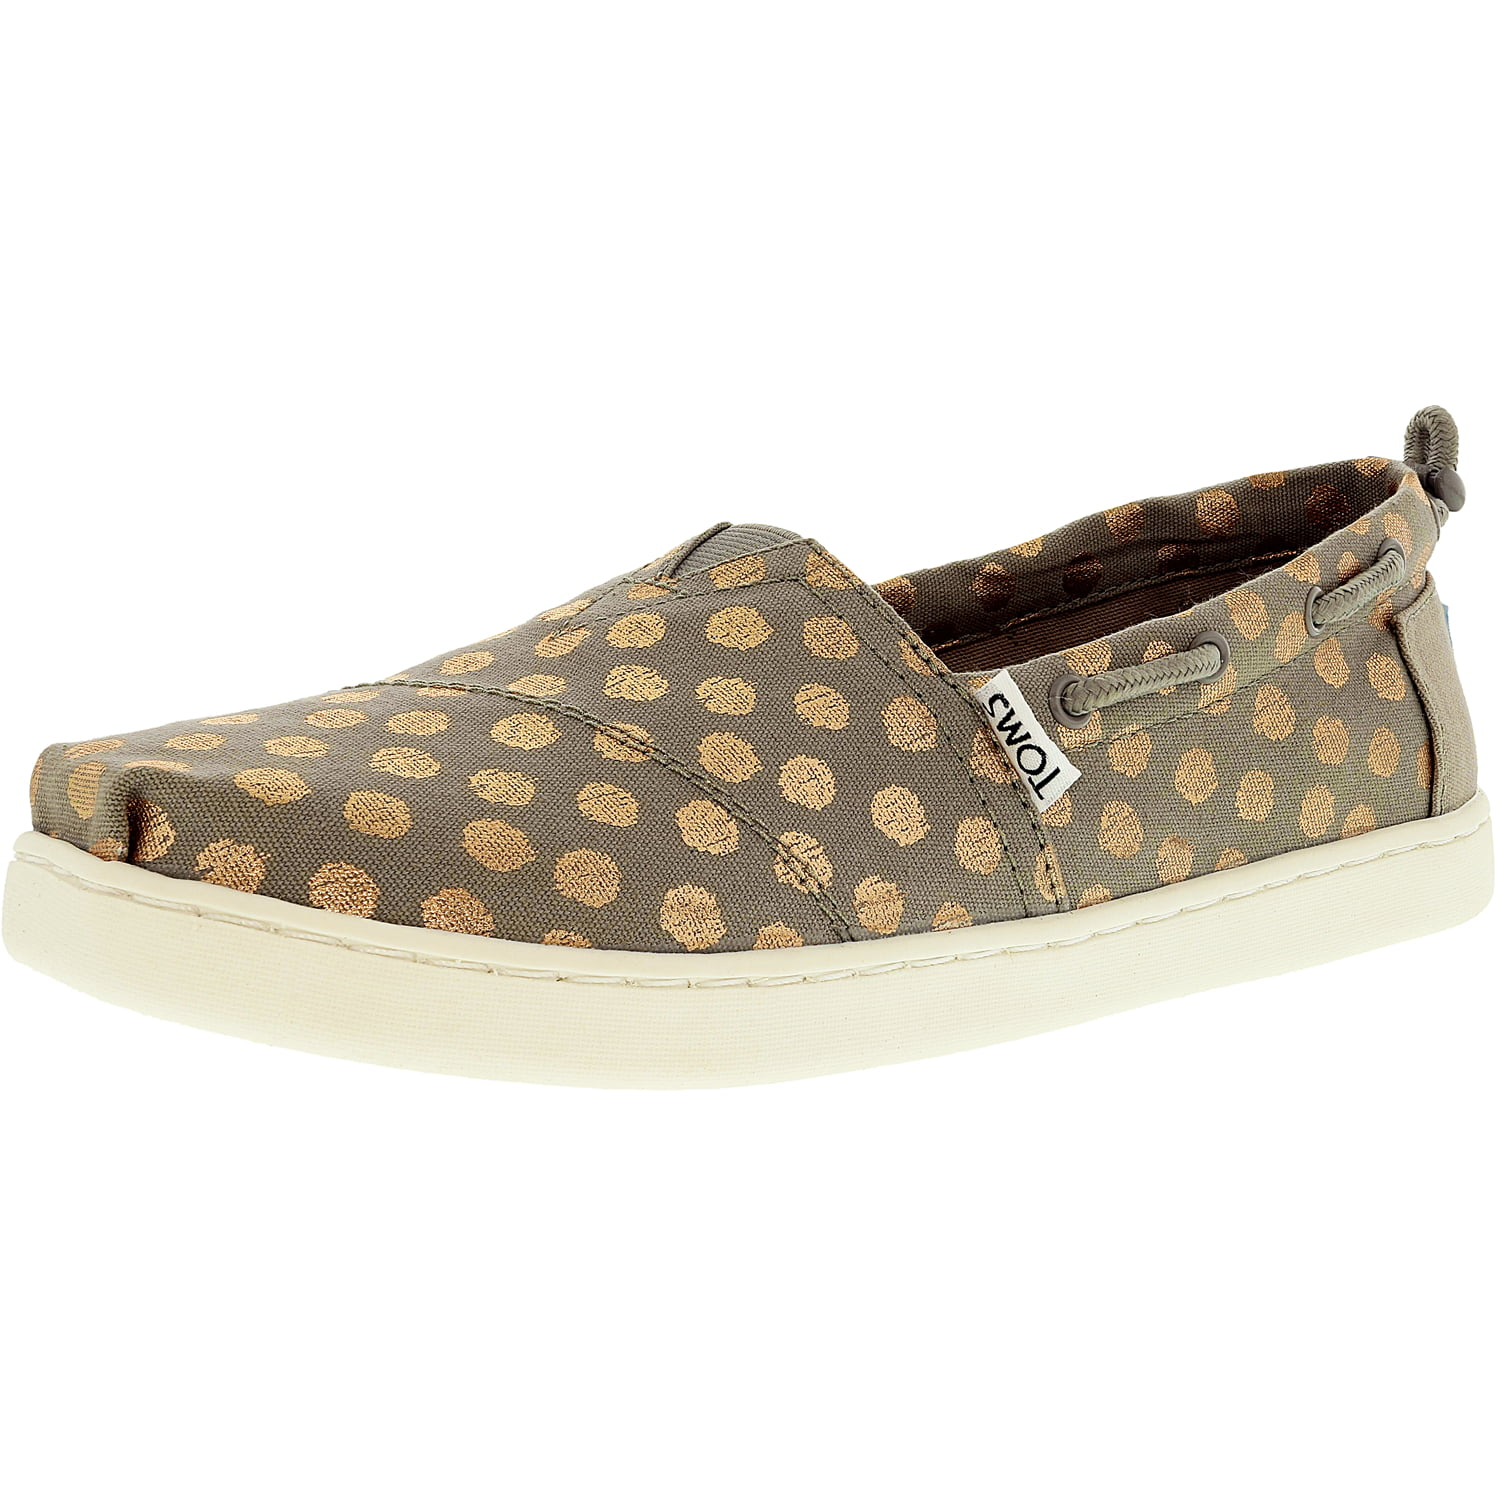 243f3e485e6 Toms - Toms Bimini Canvas Drizzle Grey Rose Gold Foil Polka Dot Ankle-High  Canvas Flat Shoe - 12M - Walmart.com